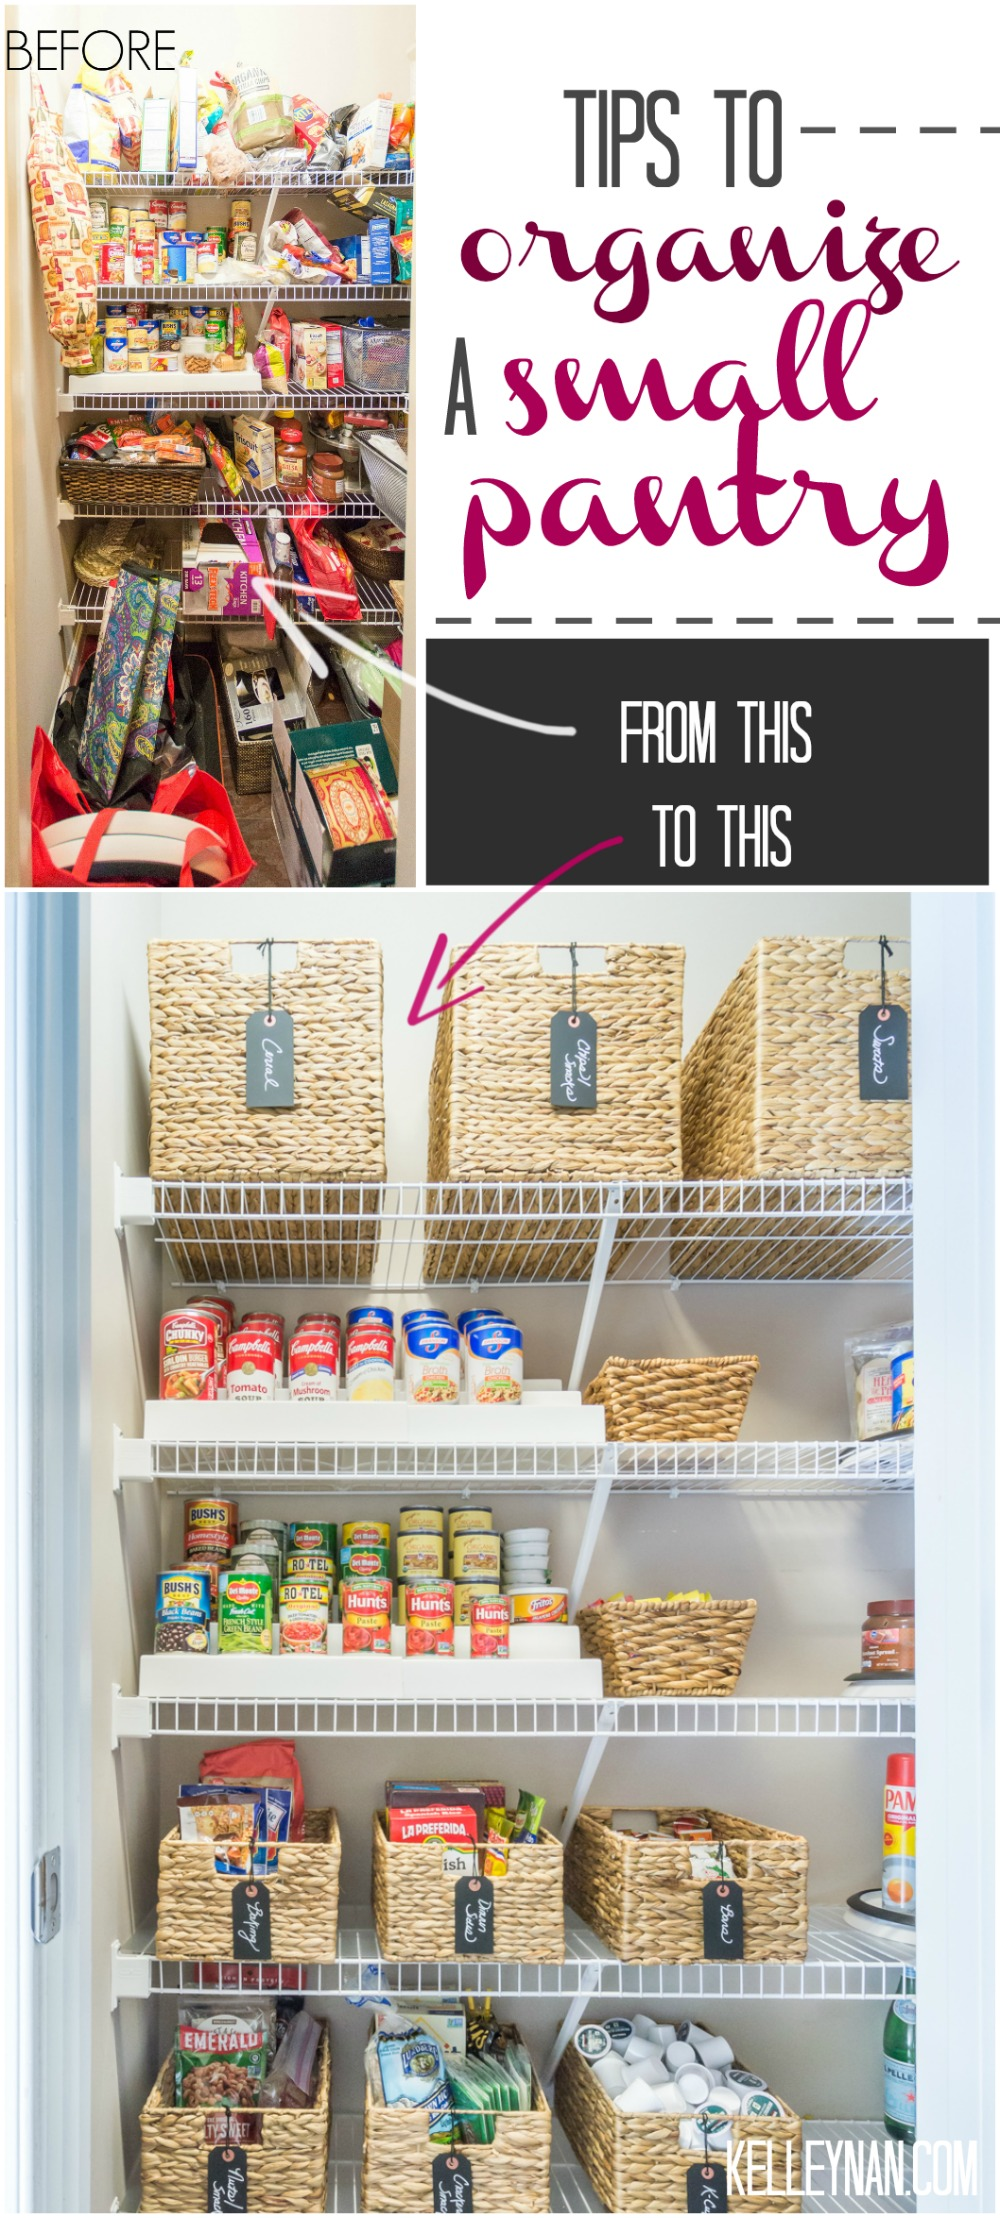 Small Pantry organization ideas with baskets, risers, and pop canisters